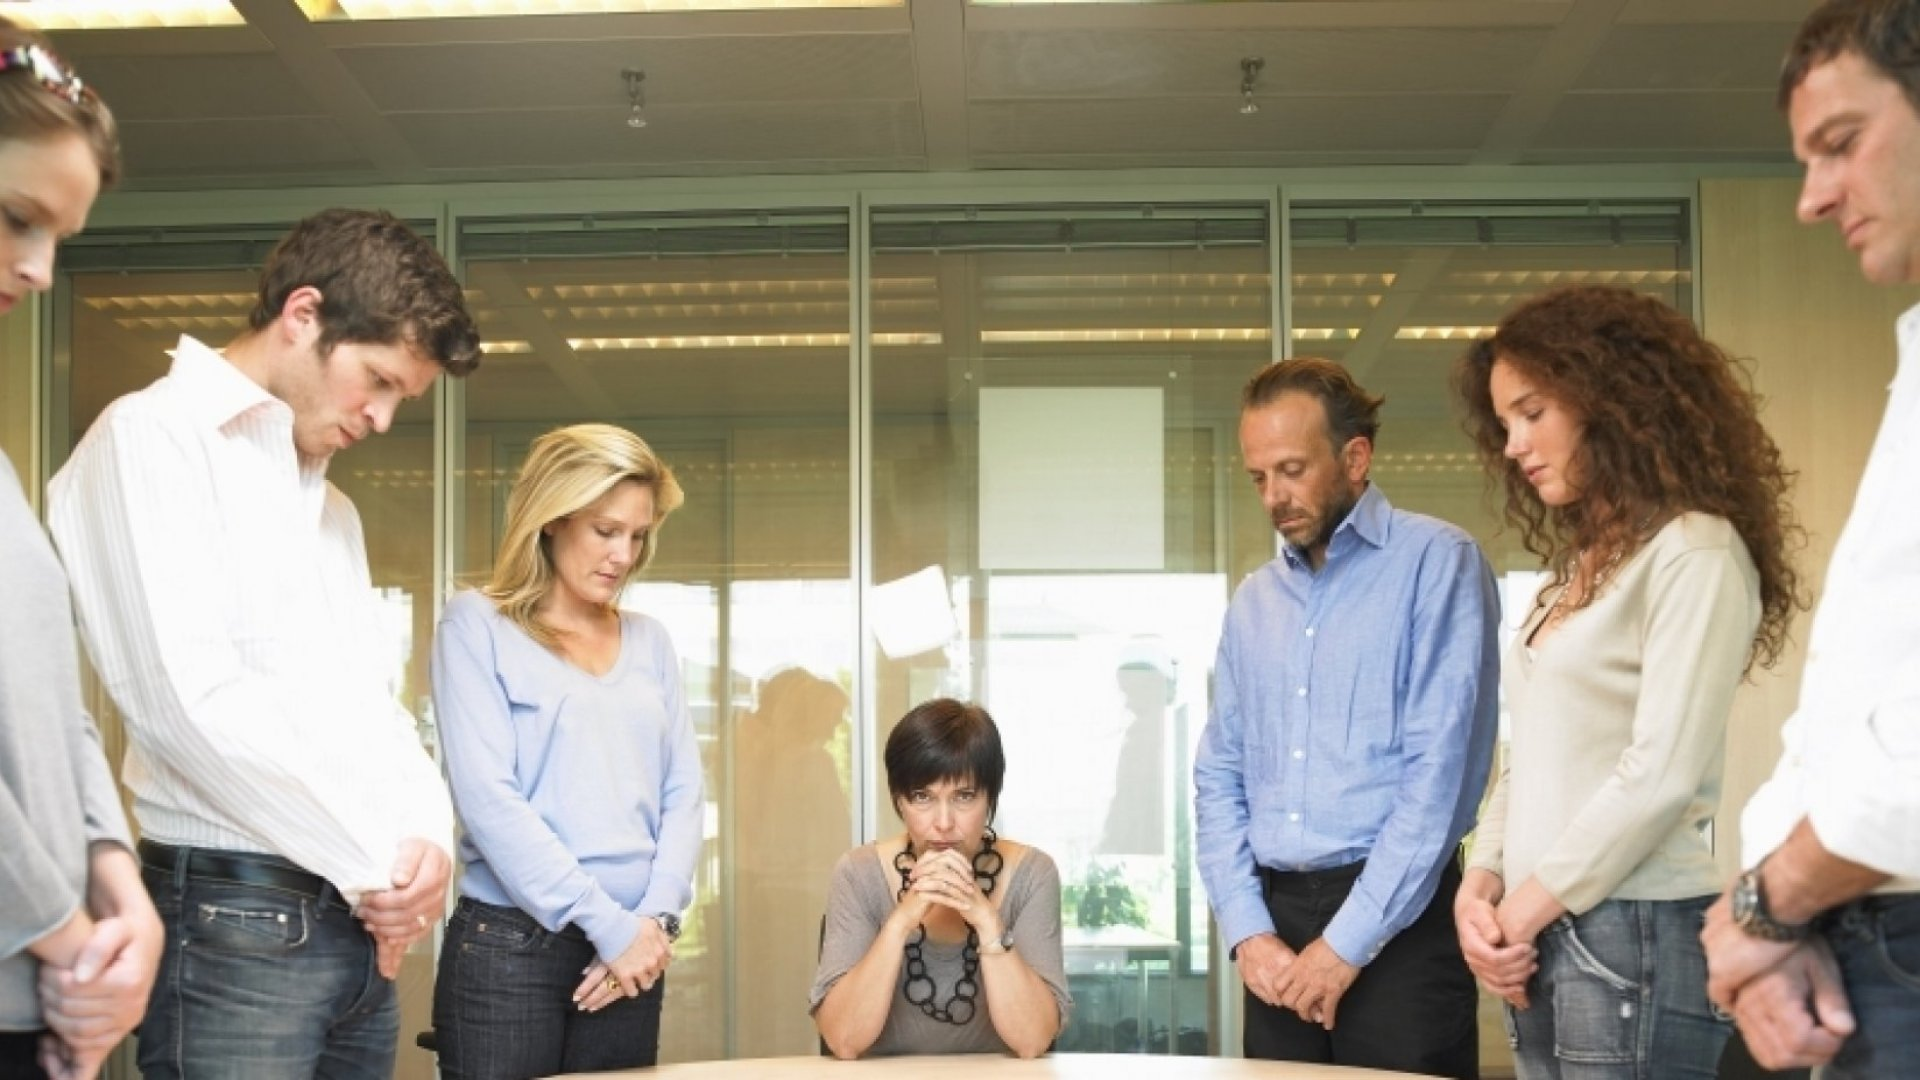 What to Do When a Workplace Event Includes Prayer